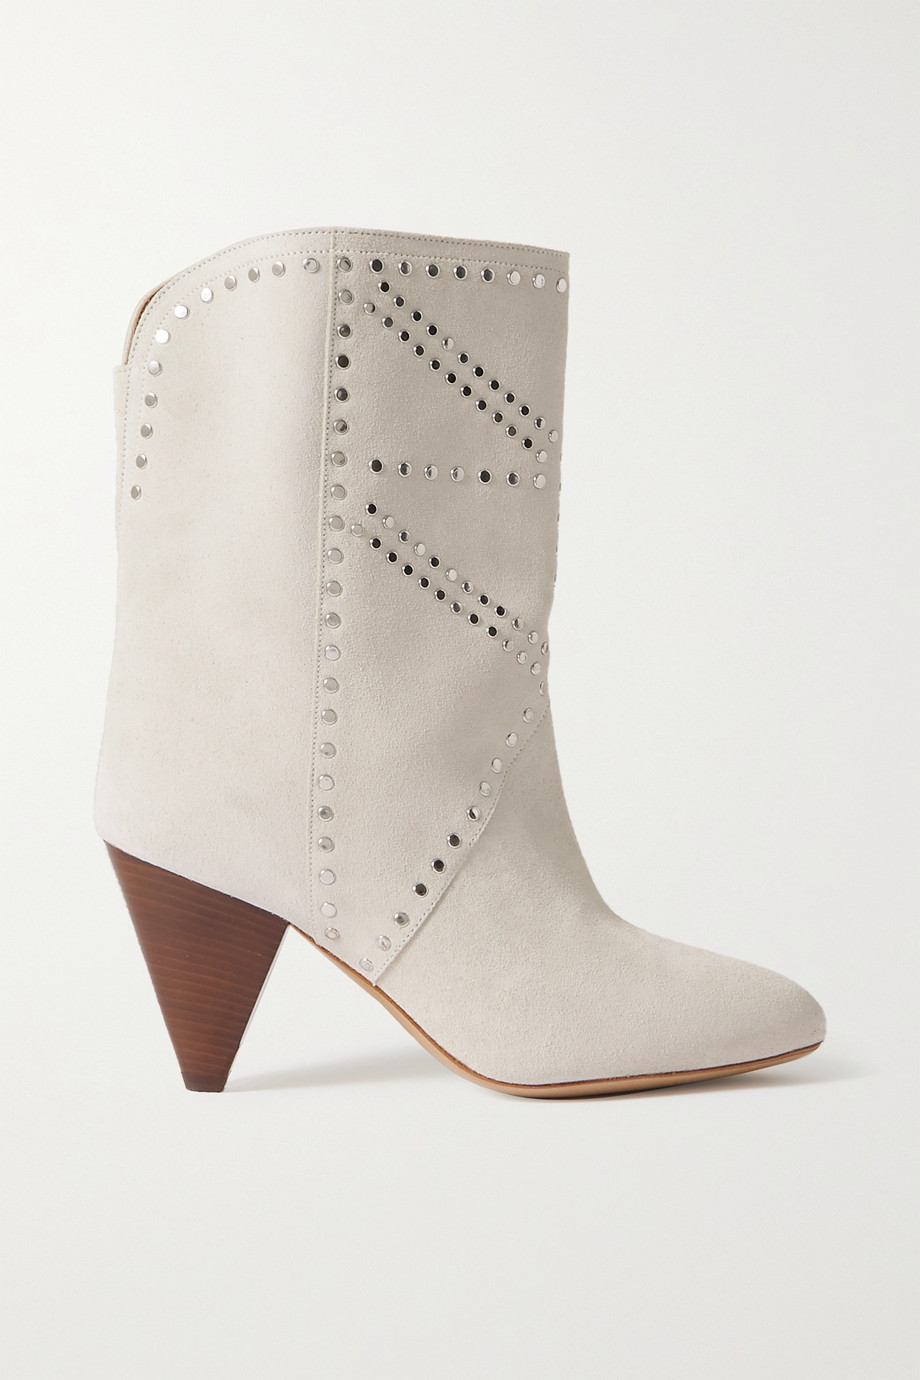 Isabel Marant Bottines en daim à clous Deezia